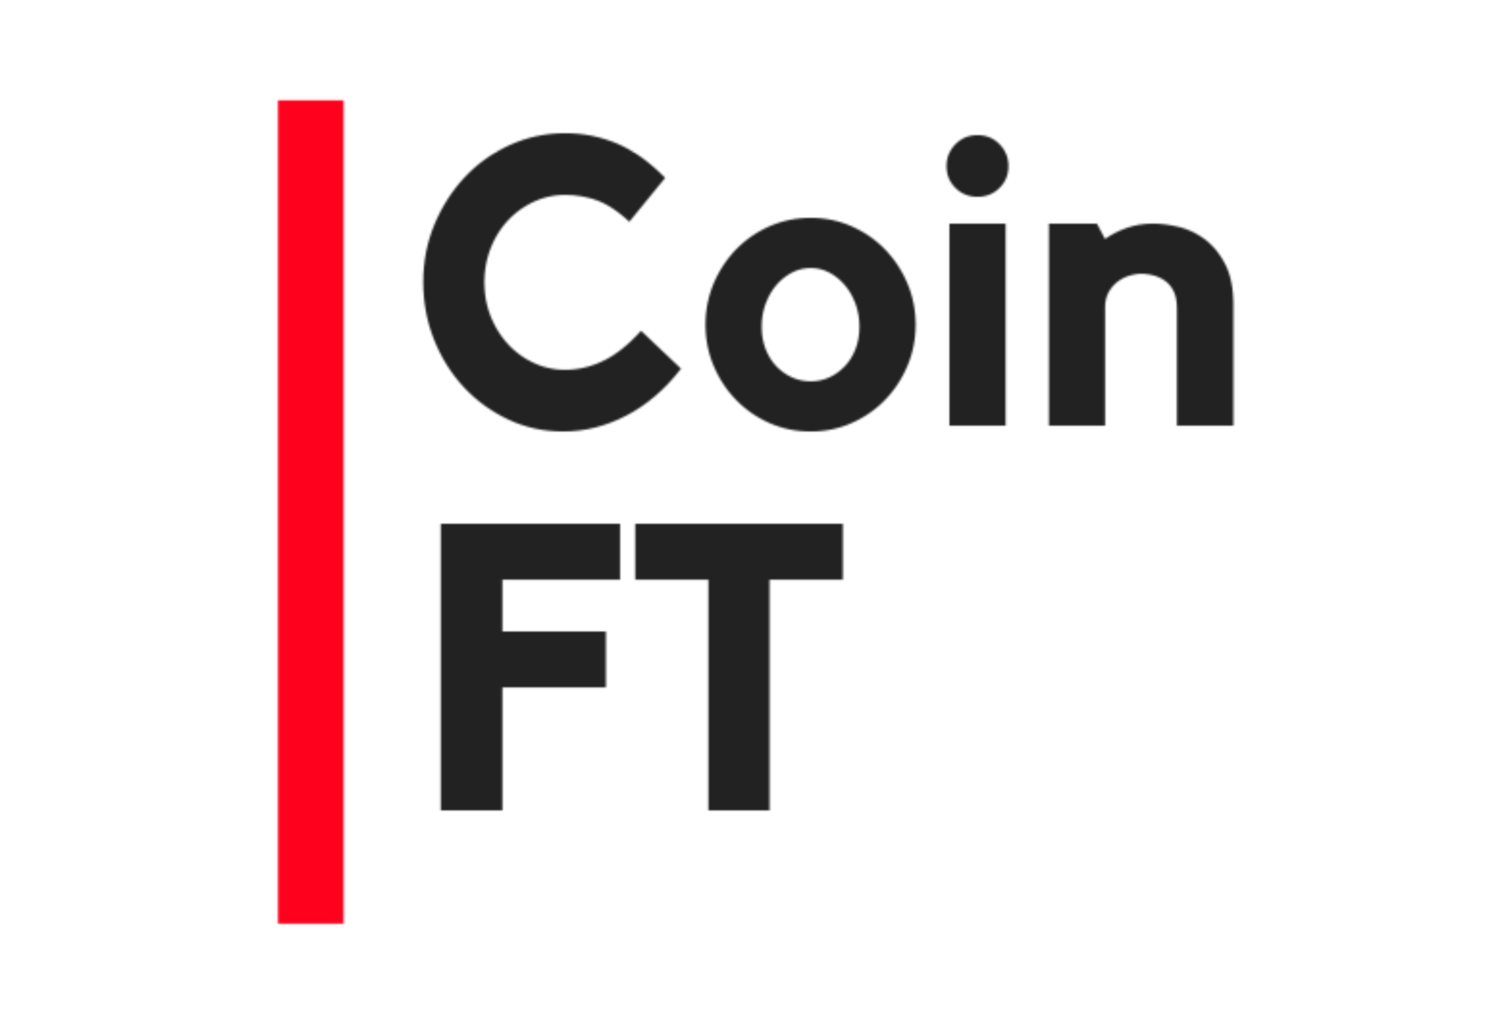 COIN FT - ICO & Cryptocurrency Founder Interviews